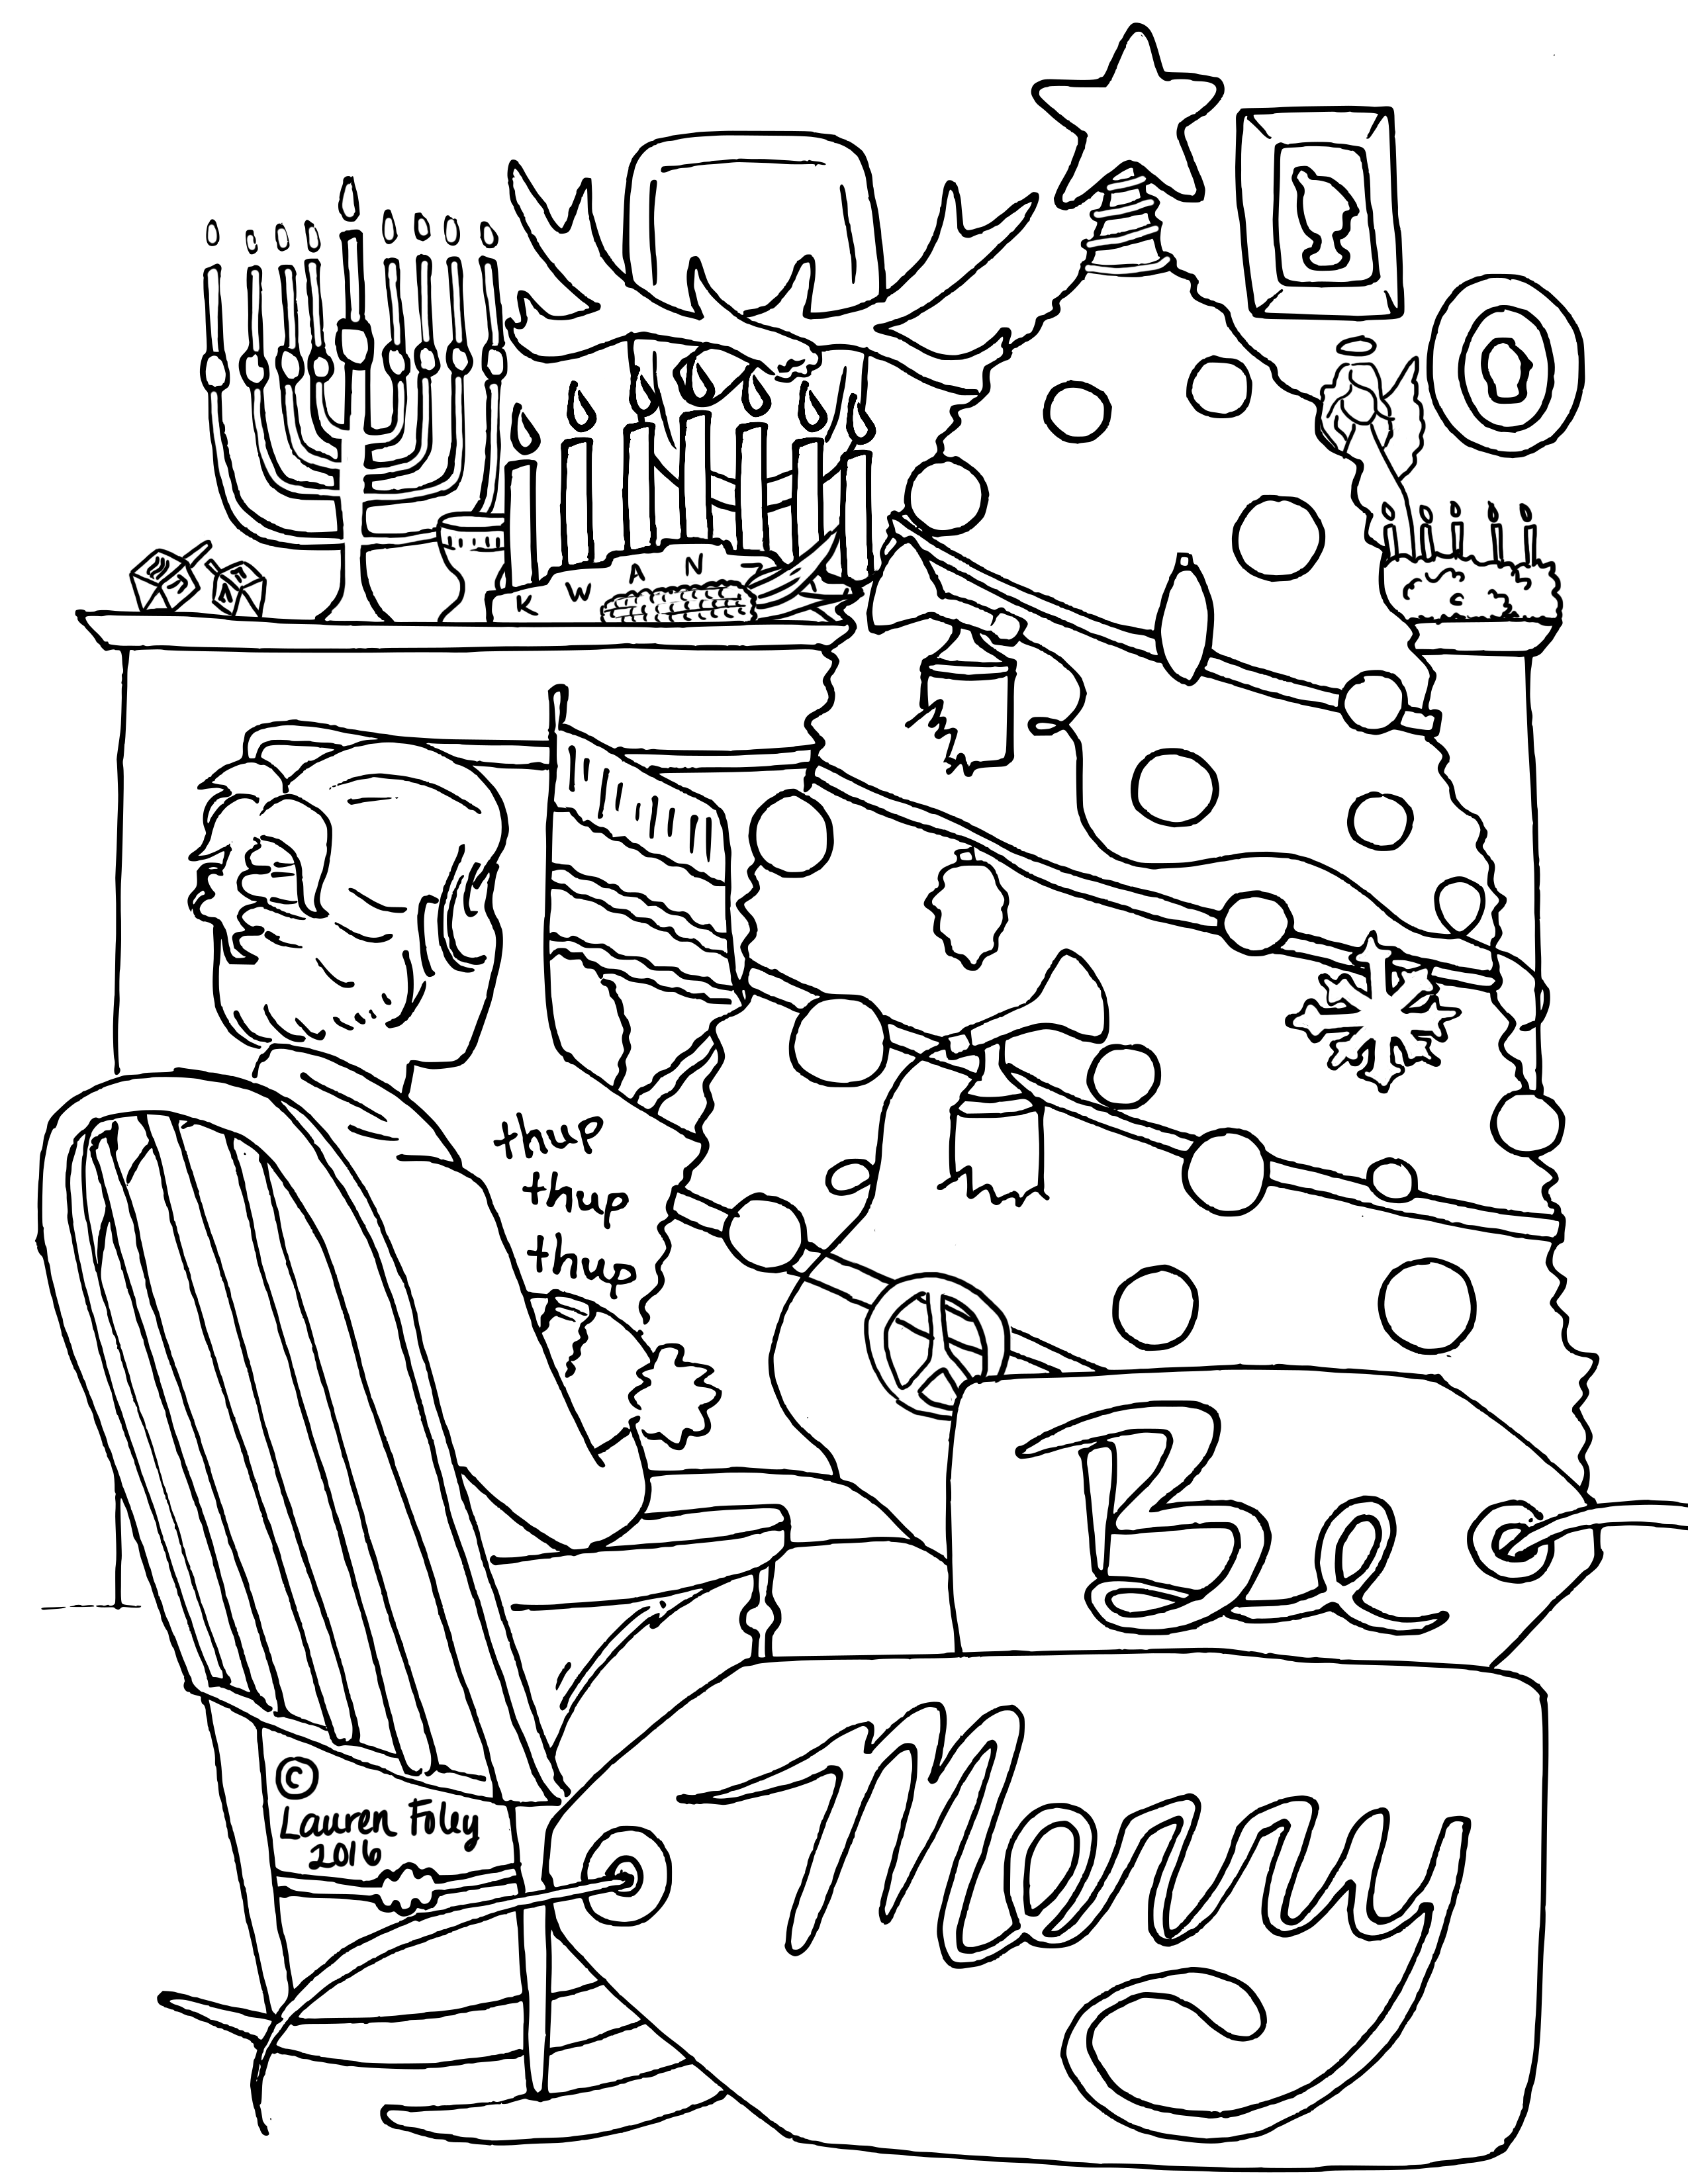 Coloring Pages — Wool Pickle